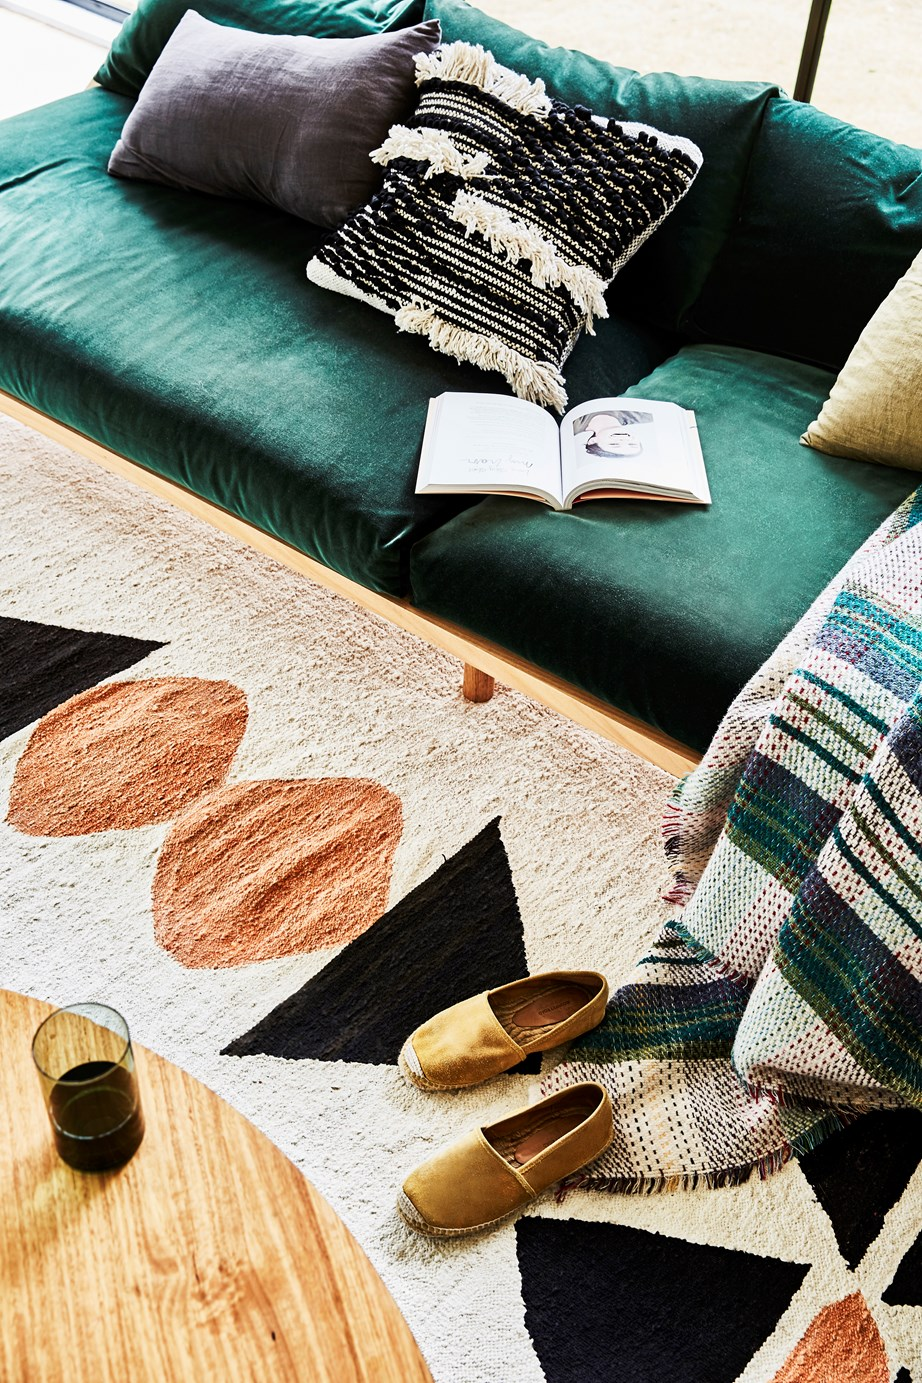 A large rug will disguise ugly flooring in a jiffy, adding texture and warmth as a bonus. *Photo:* Kristina Soljo